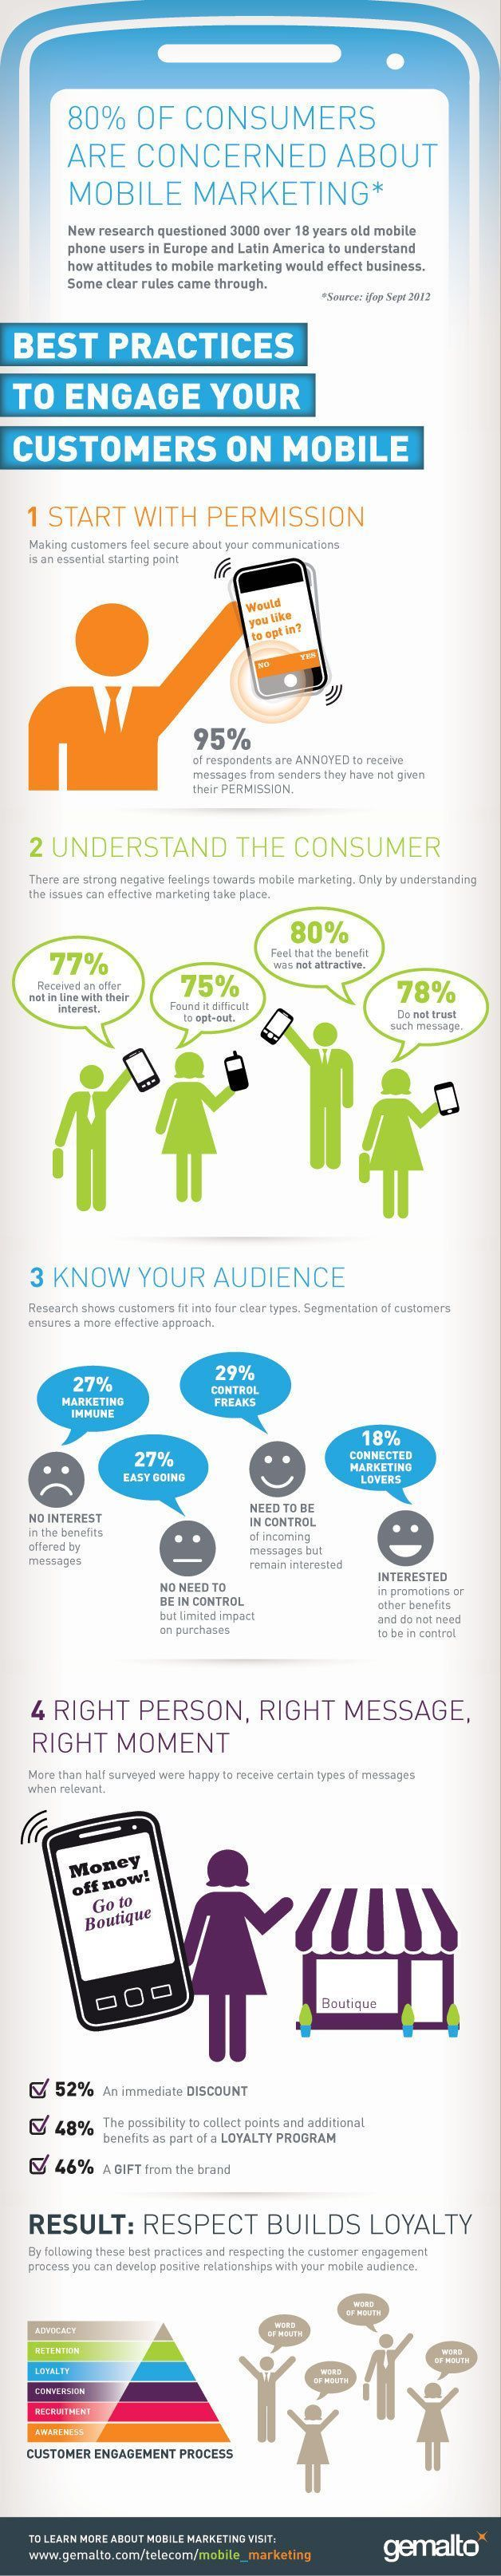 Mobile Marketing – Best Practices to Engage Your Customers on Mobile]